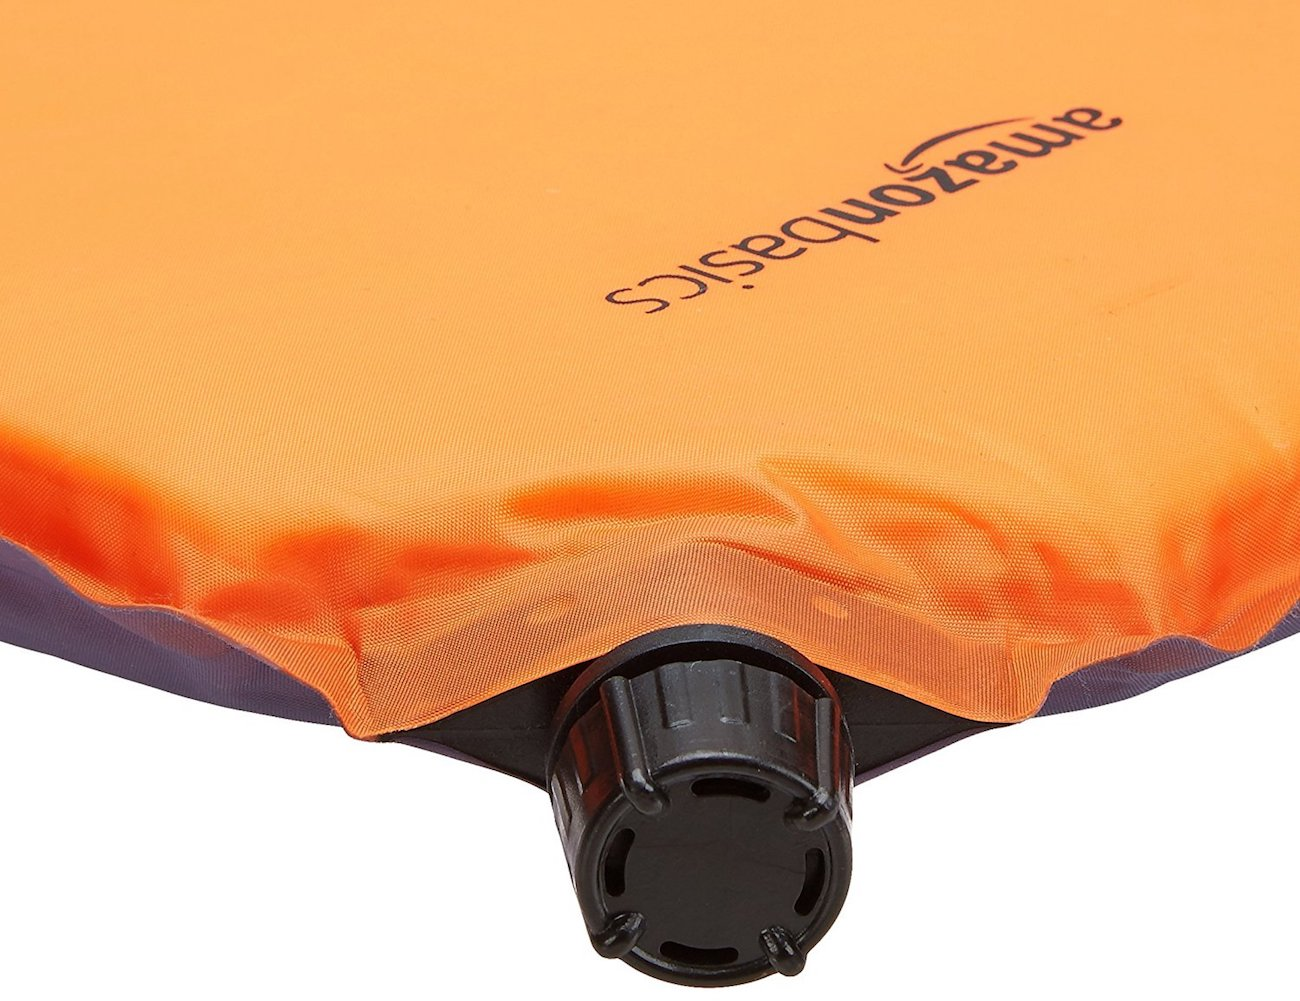 AmazonBasics Self-Inflating Air Pad